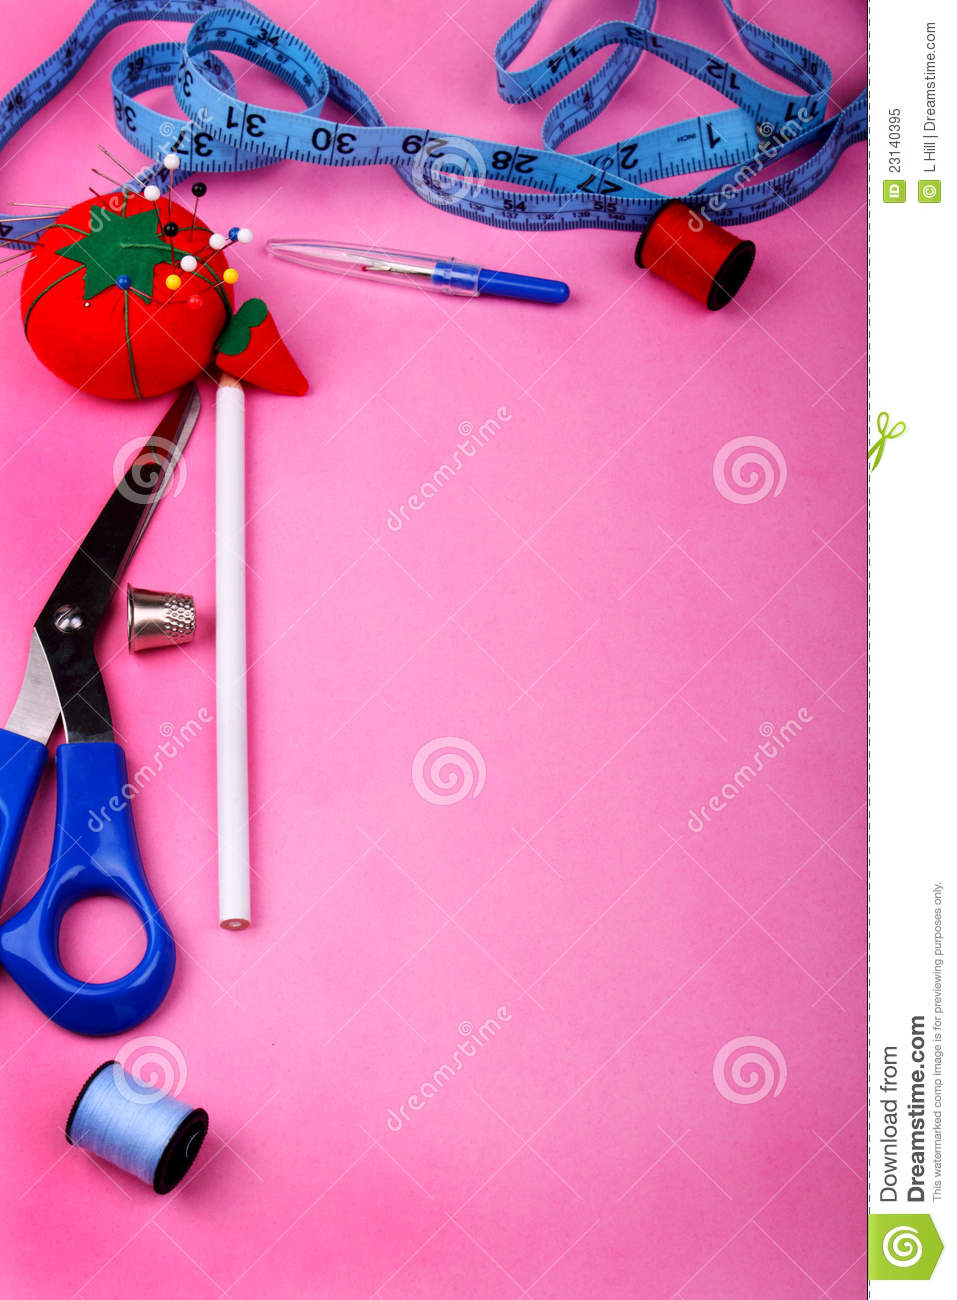 Sewing Border Clipart Vertical Border Of Sewing Tool